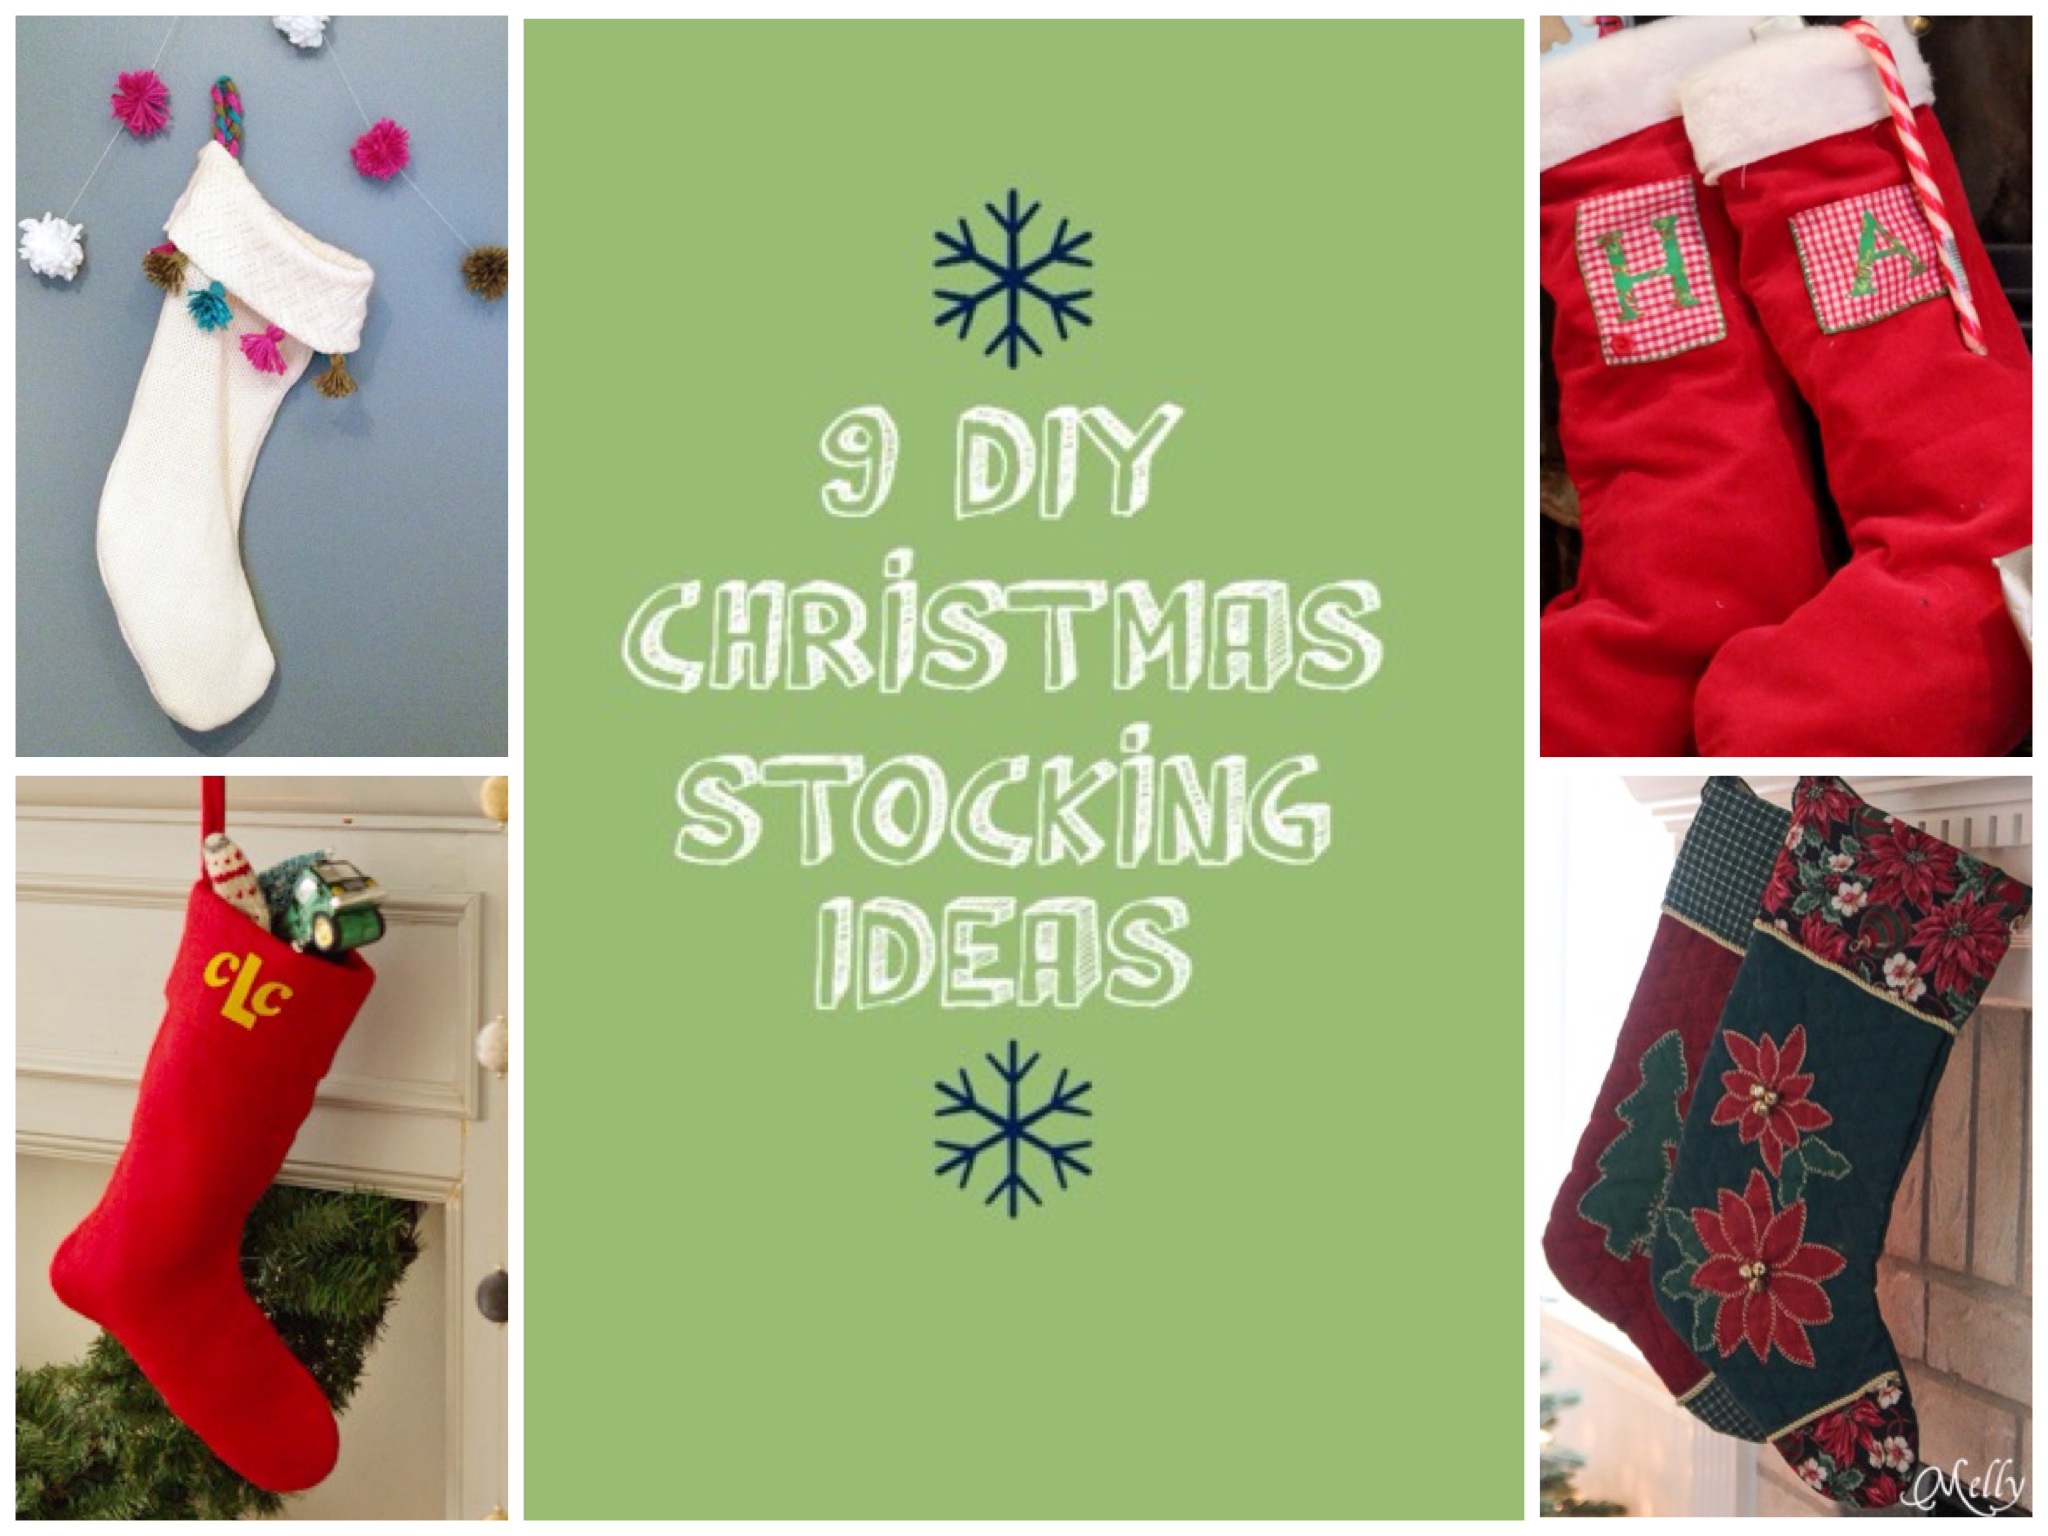 Handmade Christmas Stockings 9 Handmade Christmas Stocking Ideas Parentmap